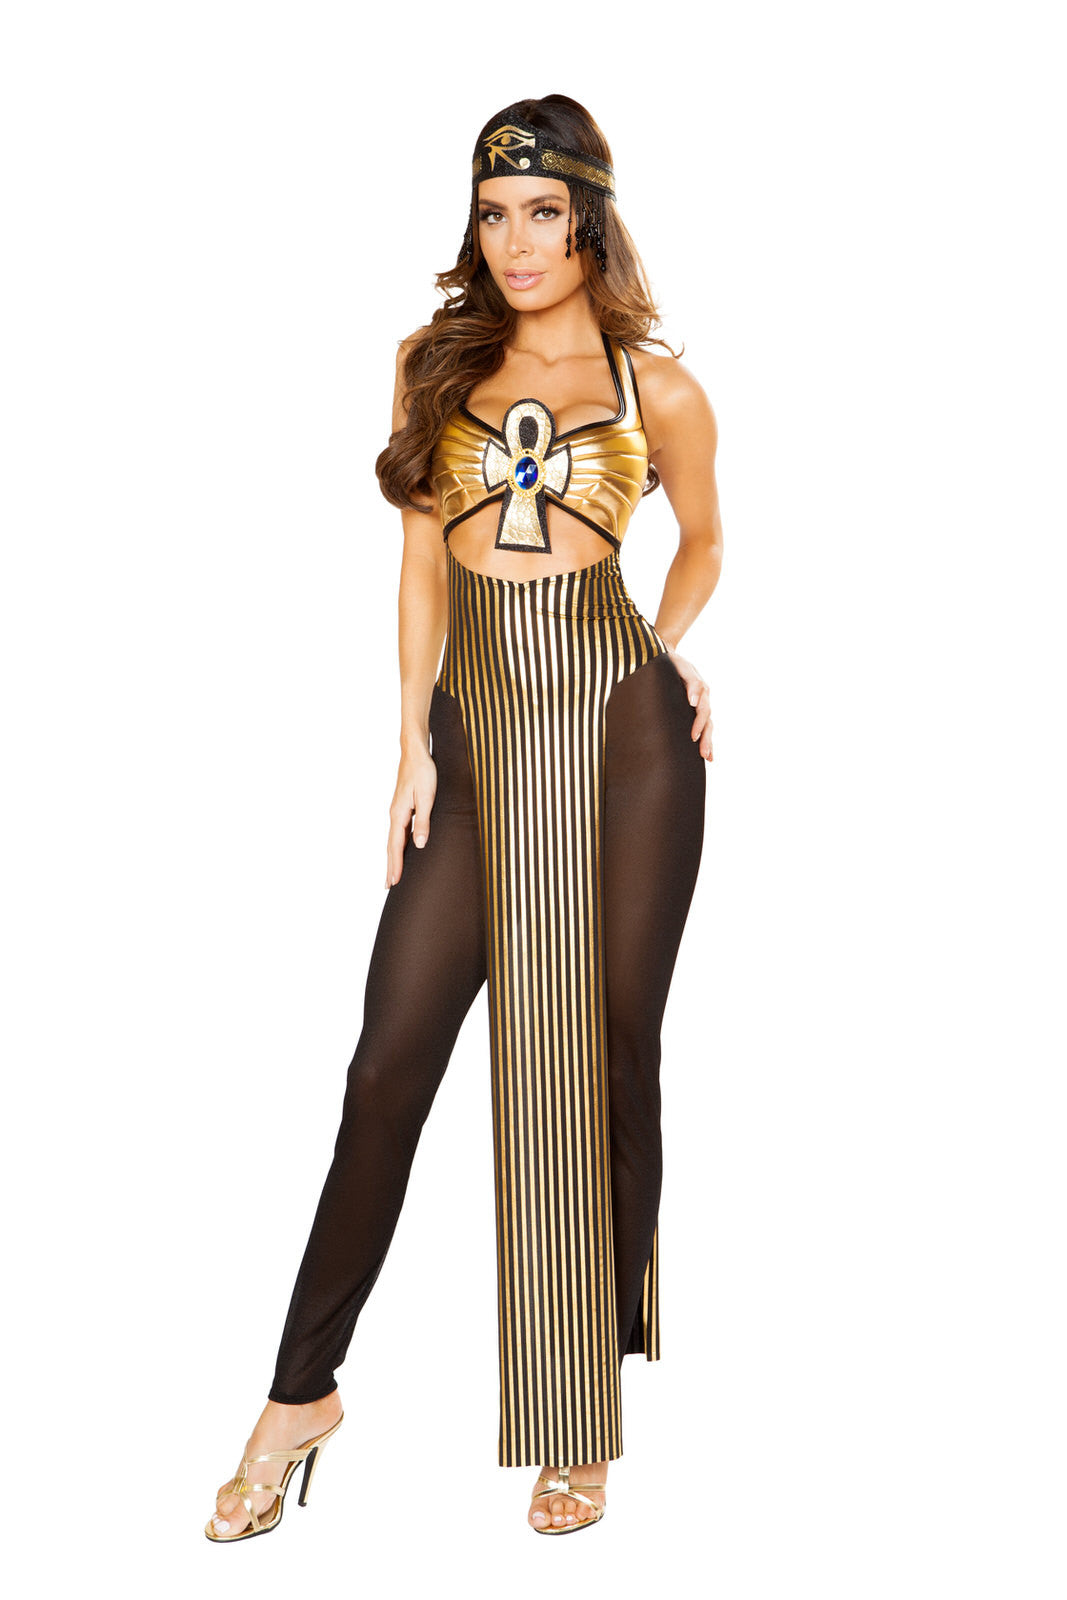 10114 - 3pc Cleopatra ${description} | Roma Costume and Roma Confidential wholesale manufacturer of Women Apparel bulk world wide wholesale and world wide drop ship services for Adult Halloween Costumes, Sexy and Elegant Lingerie, Rave Clothing, Club wear, and Christmas Costumes. Costumes, Roma Costume, Inc., Roma Costume, Roma Confidential, Wholesale clothing, drop ship, drop ship service, Wholesale Lingerie, Wholesale Adult Halloween Costumes, Rave Clothing, EDM Clothing, Festival Wear, Christmas Costumes, Clubwear, Club wear.